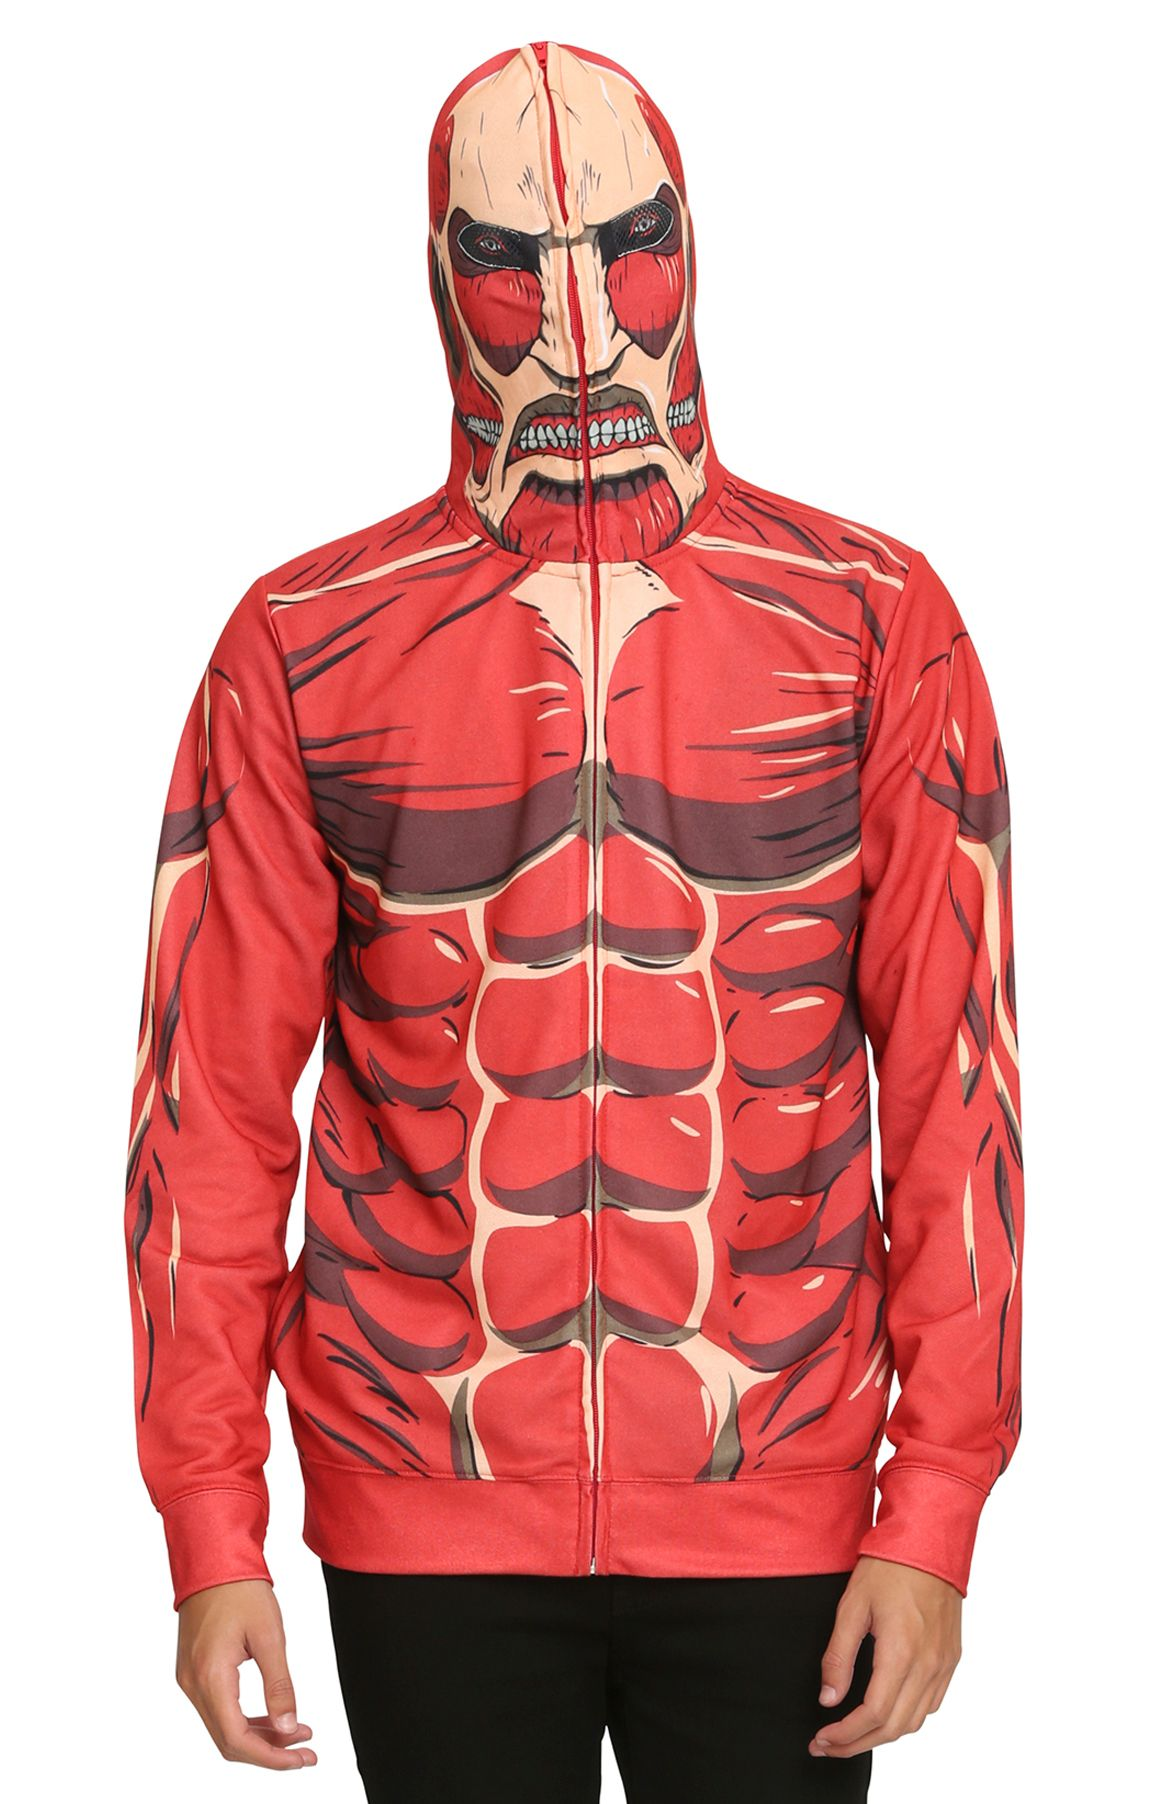 Scaring Nearby Humans Has Never Been So Easy With The Full Zip